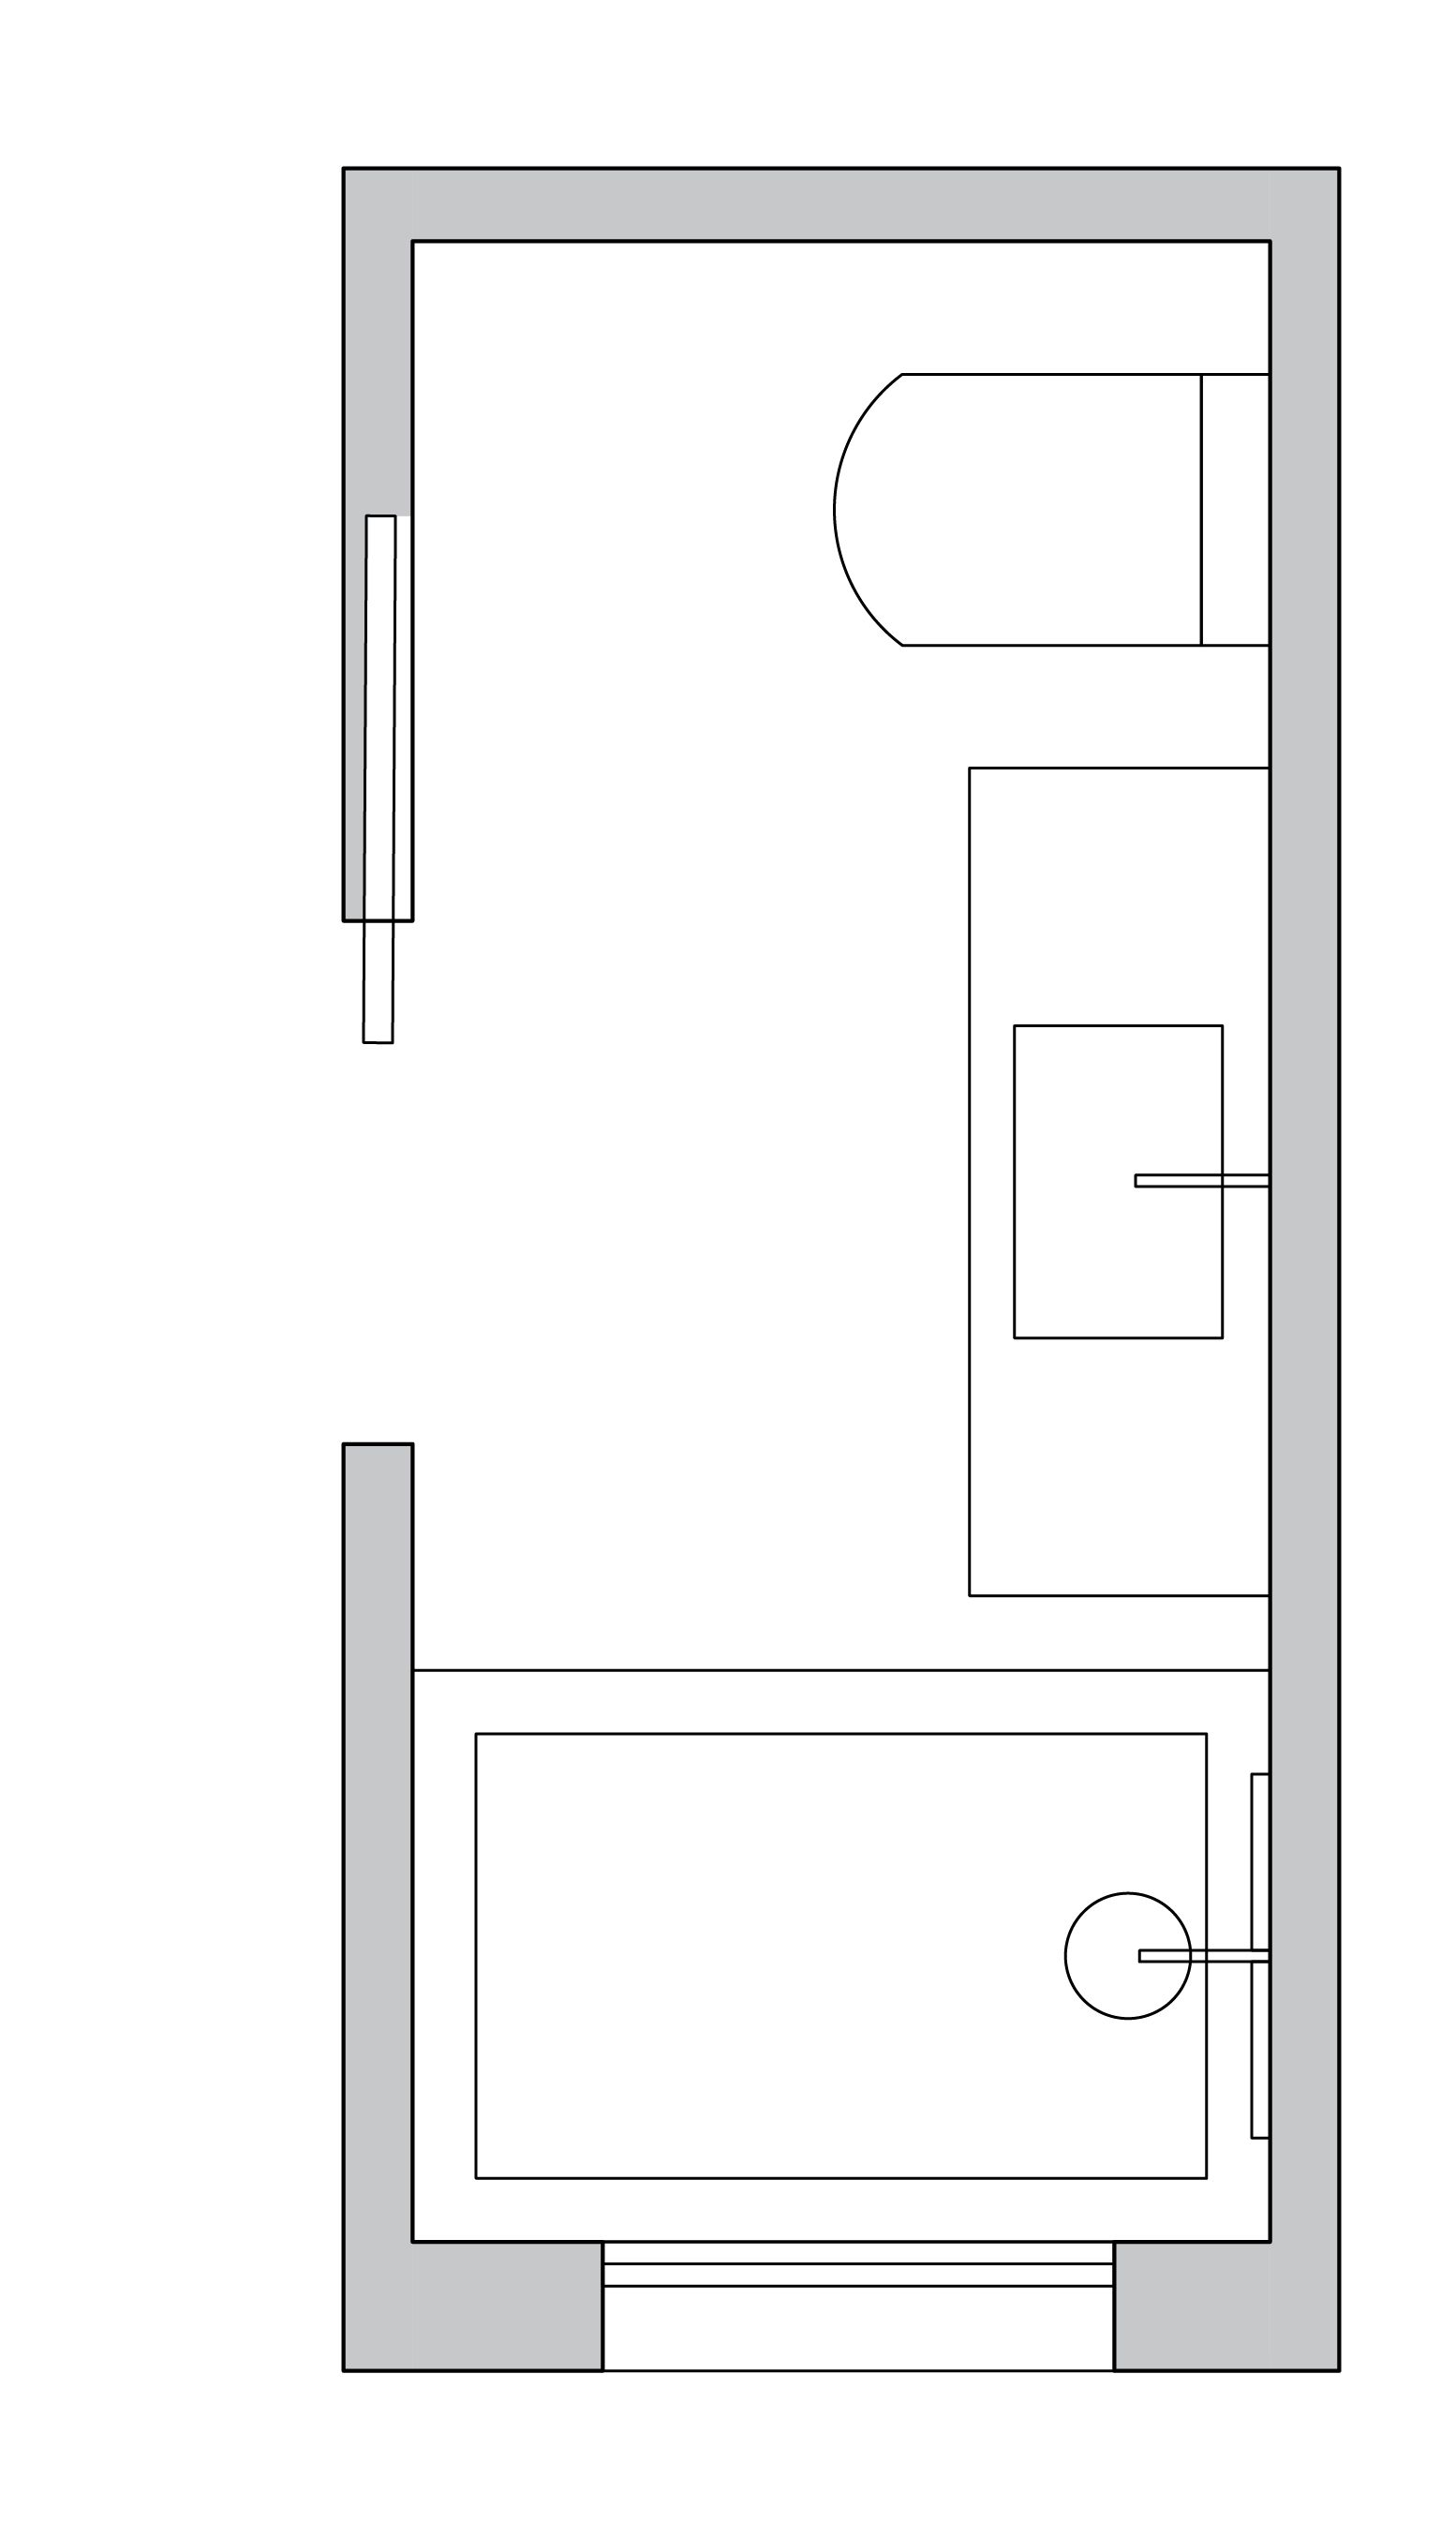 Best Kitchen Gallery: Small Bathroom Layout Ideas From An Architect To Optimize Space of Bathroom Design Layout  on rachelxblog.com